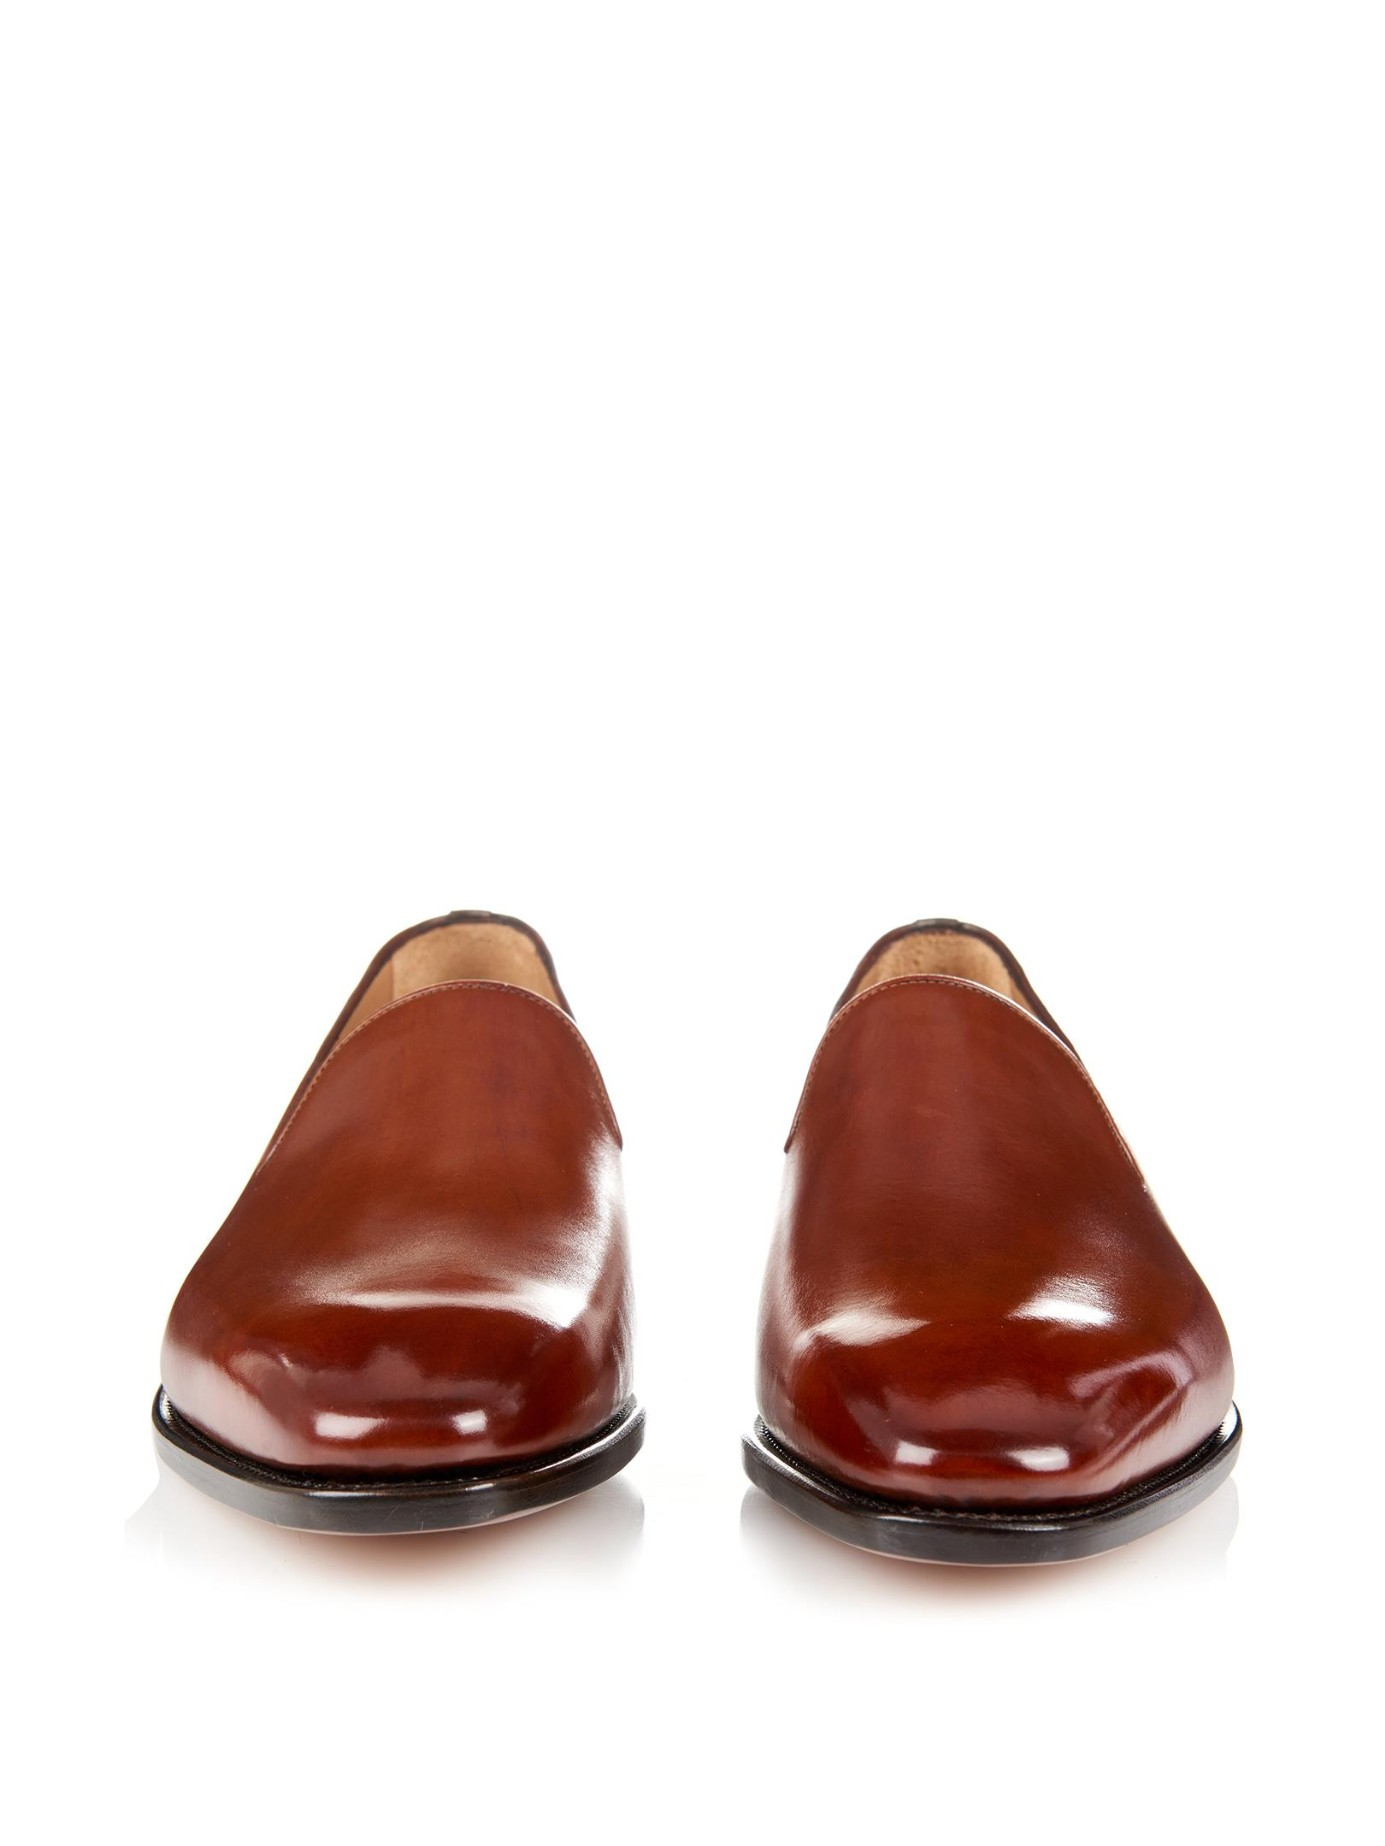 Ferragamo Naldo Tramezza Leather Loafers in Brown for Men - Lyst